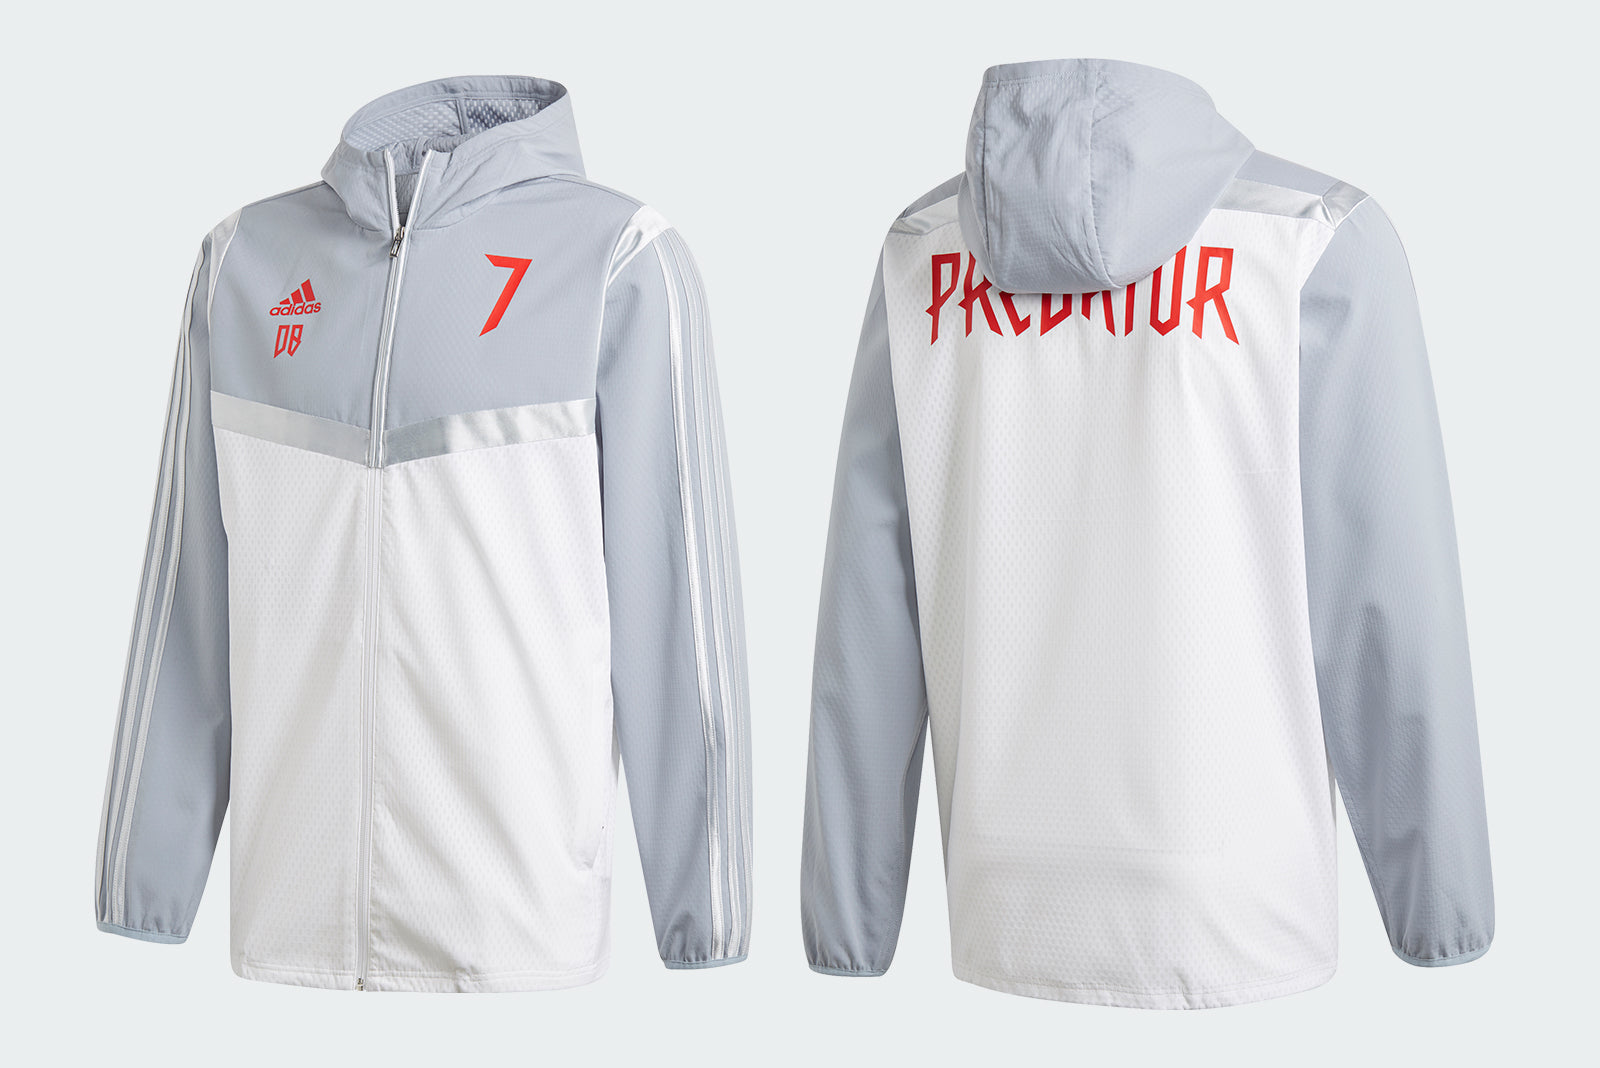 c21c8d22887 adidas Predator DB HB Jacket DZ7310 Clear White Grey Price  £89.00. Launch   Thursday 7th of March